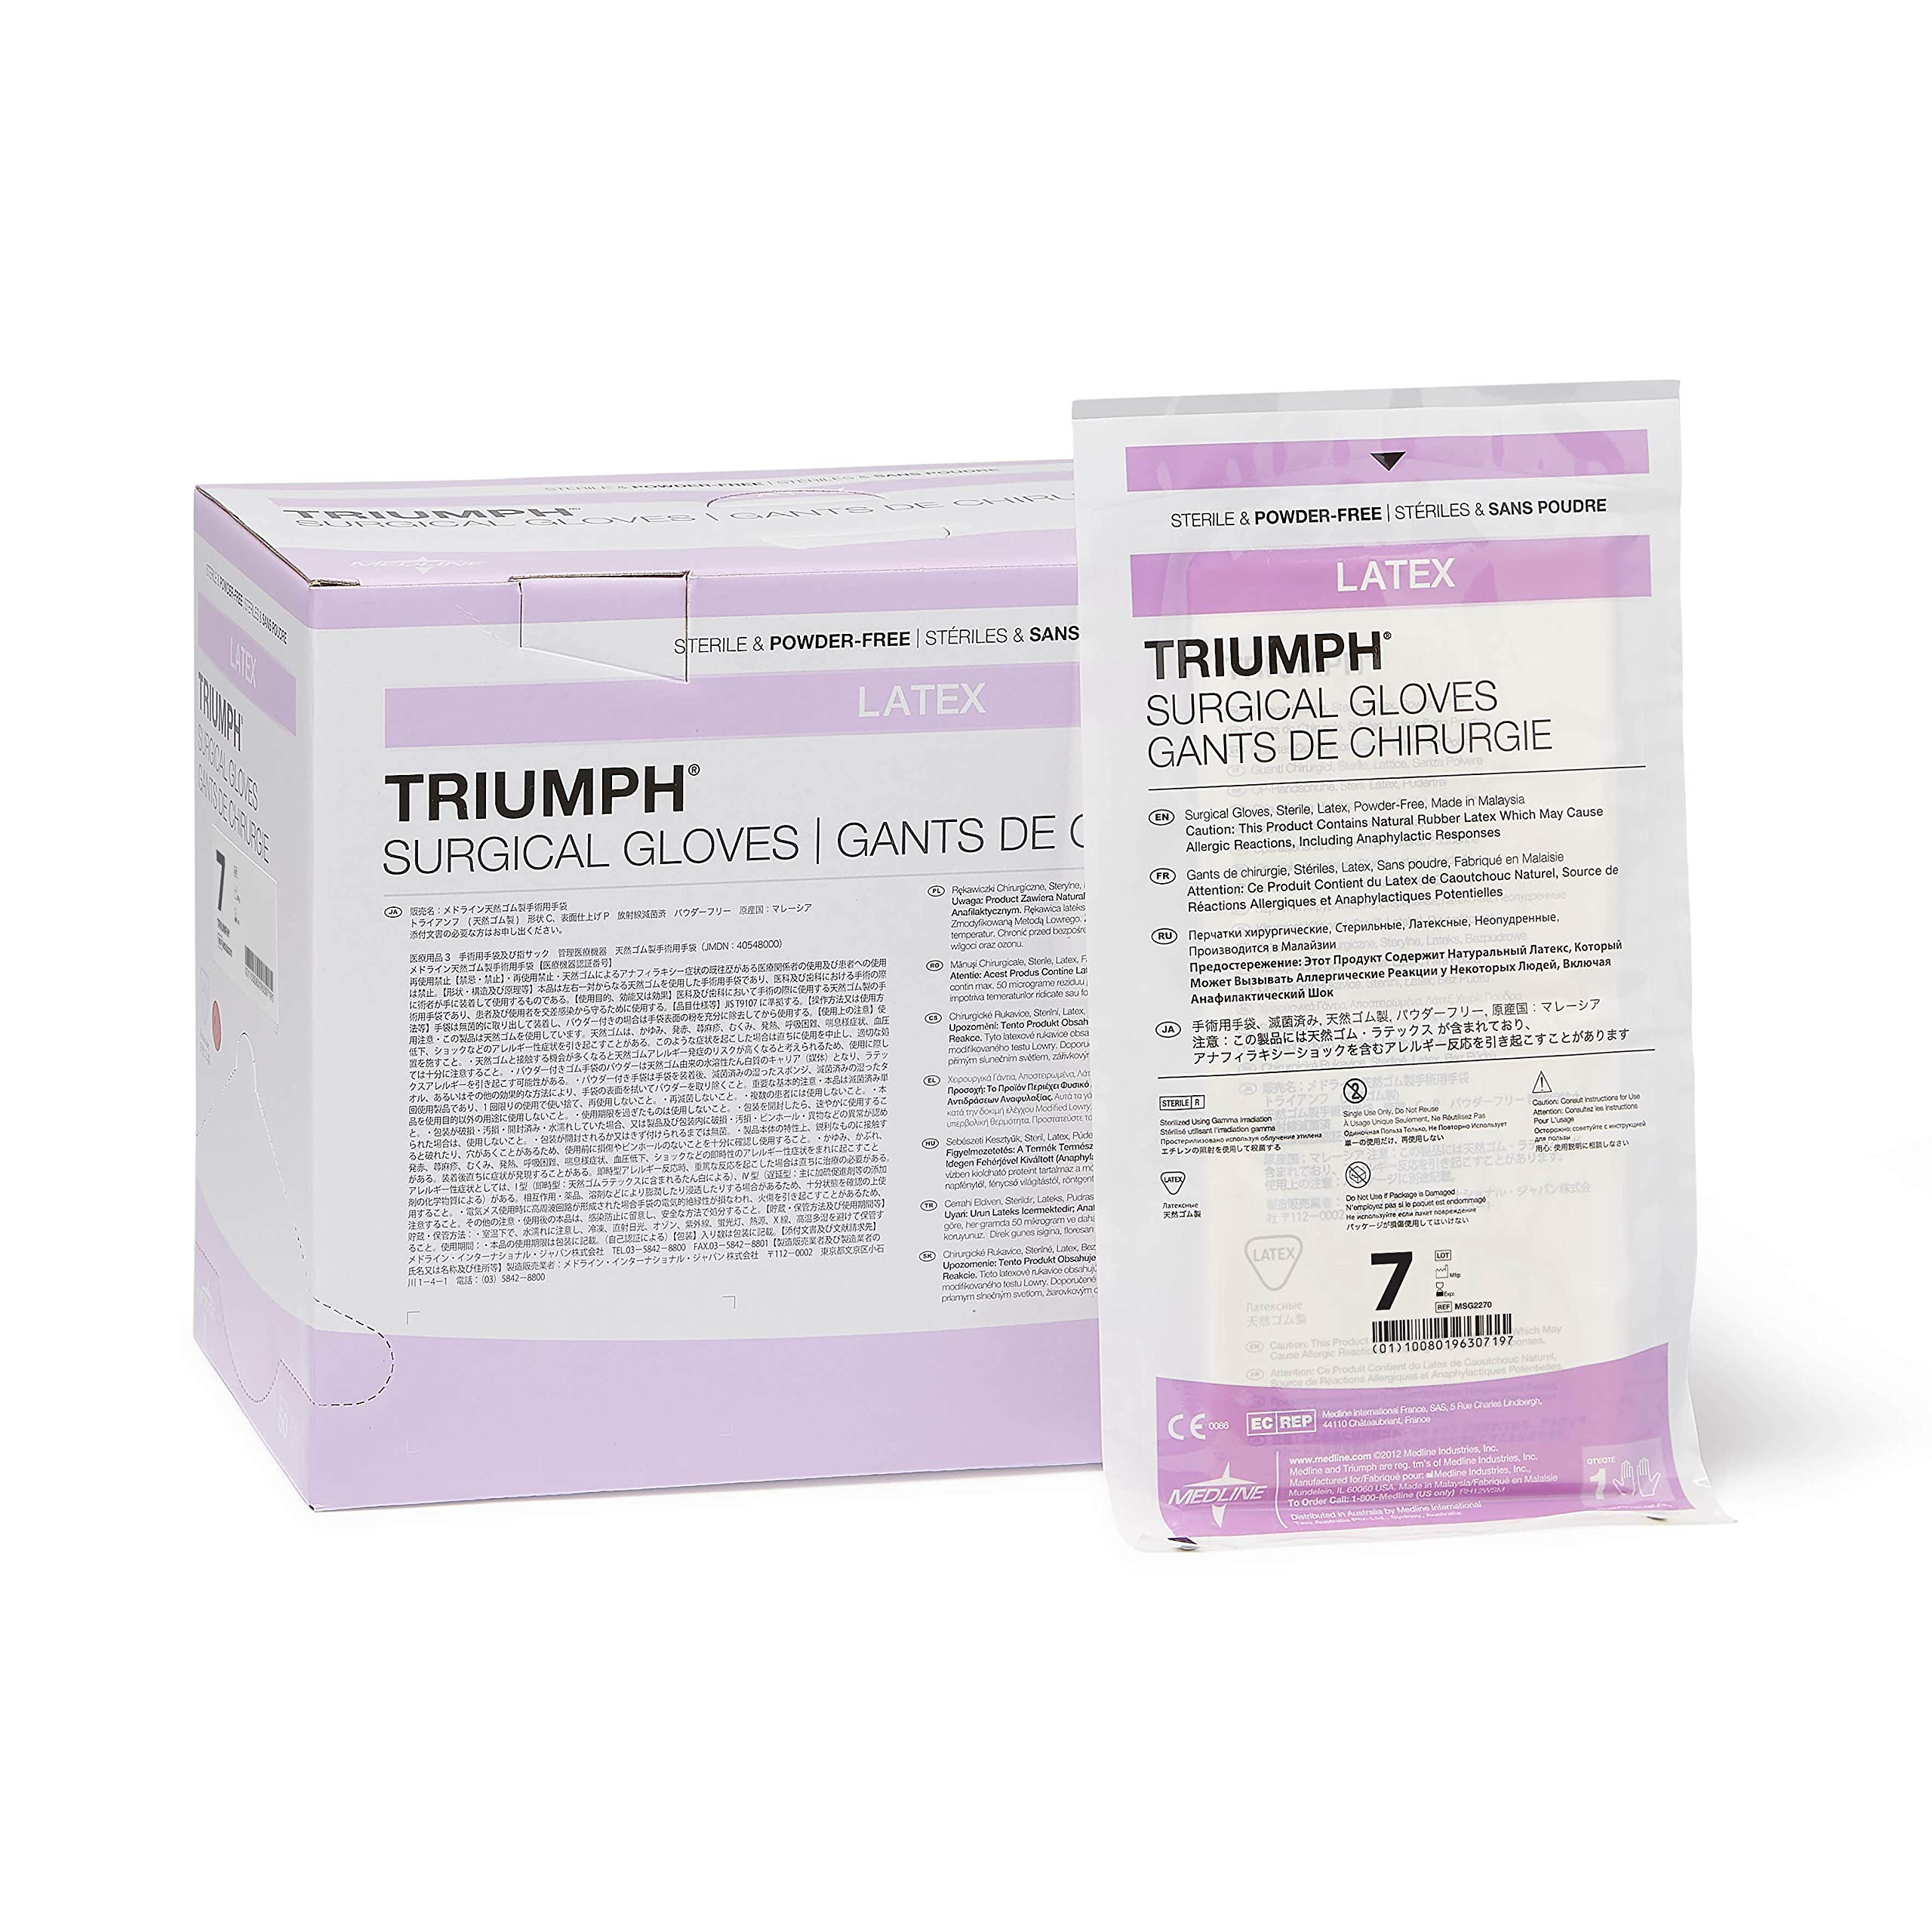 Medline MSG2270 Triumph Sterile Powder-Free Latex Surgical Glove, Size 7, White (Pack of 200) by Medline